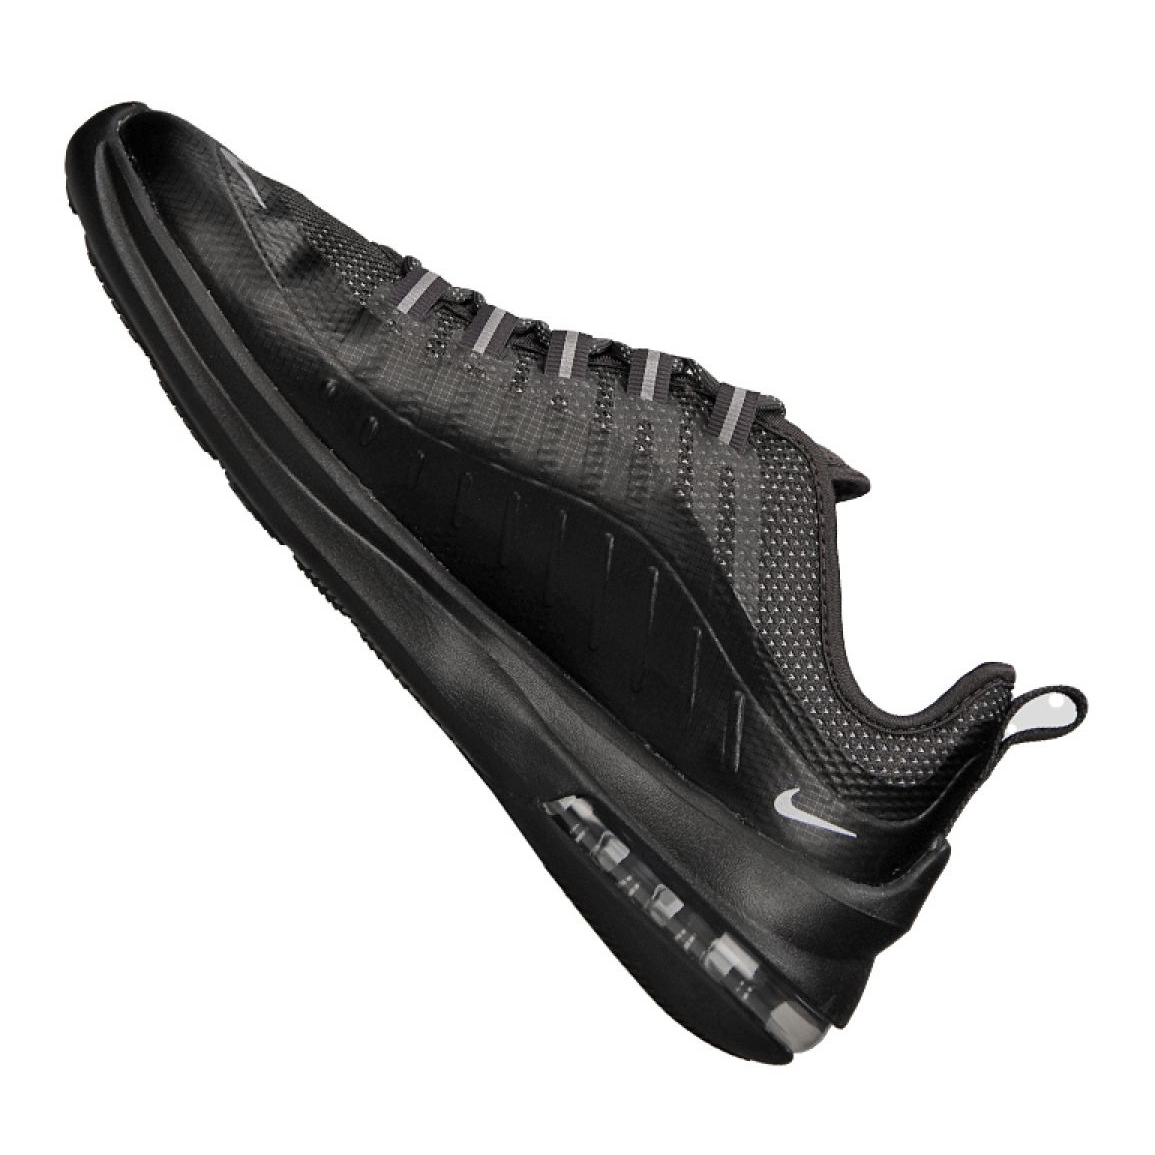 Zapatillas Nike Air Max Axis Premium M AA2148 009 negro